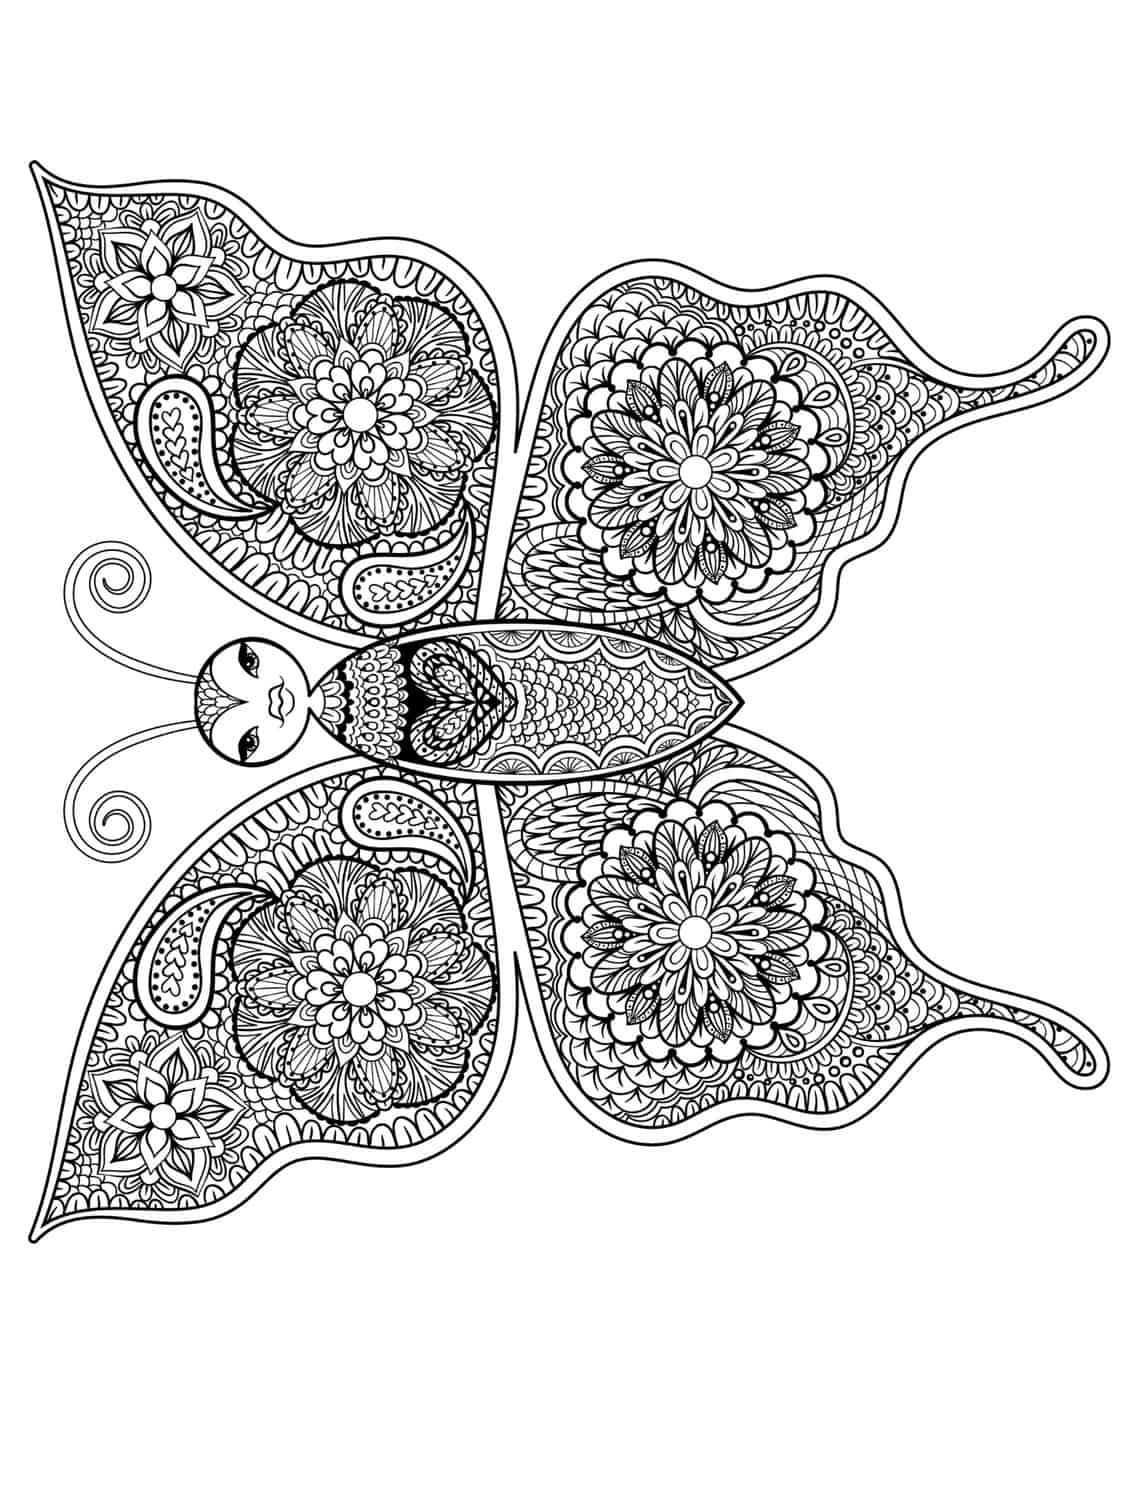 23 Free Printable Insect & Animal Adult Coloring Pages - Page 12 of ...